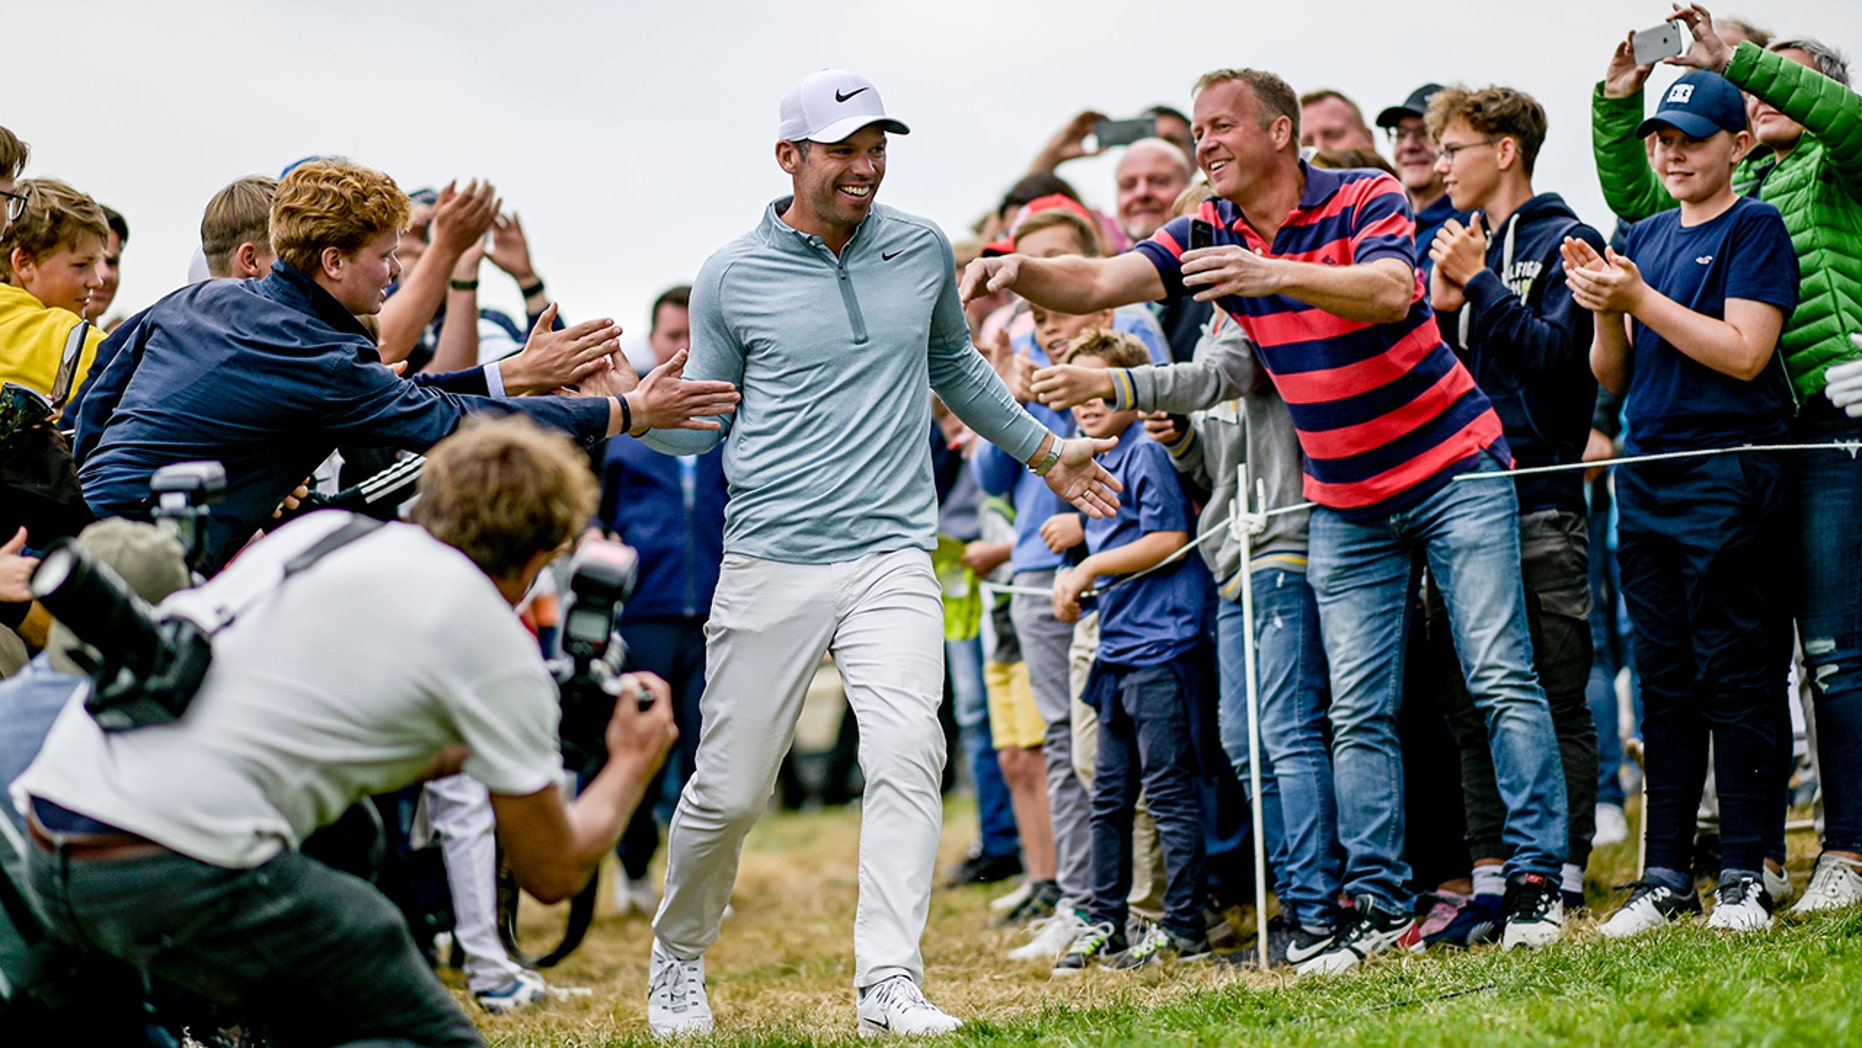 England's Pauls Casey celebrates after winning the European Open golf tournament, in Hamburg, Germany, Sunday Sept. 8, 2019. (Axel Heimken/dpa via AP)